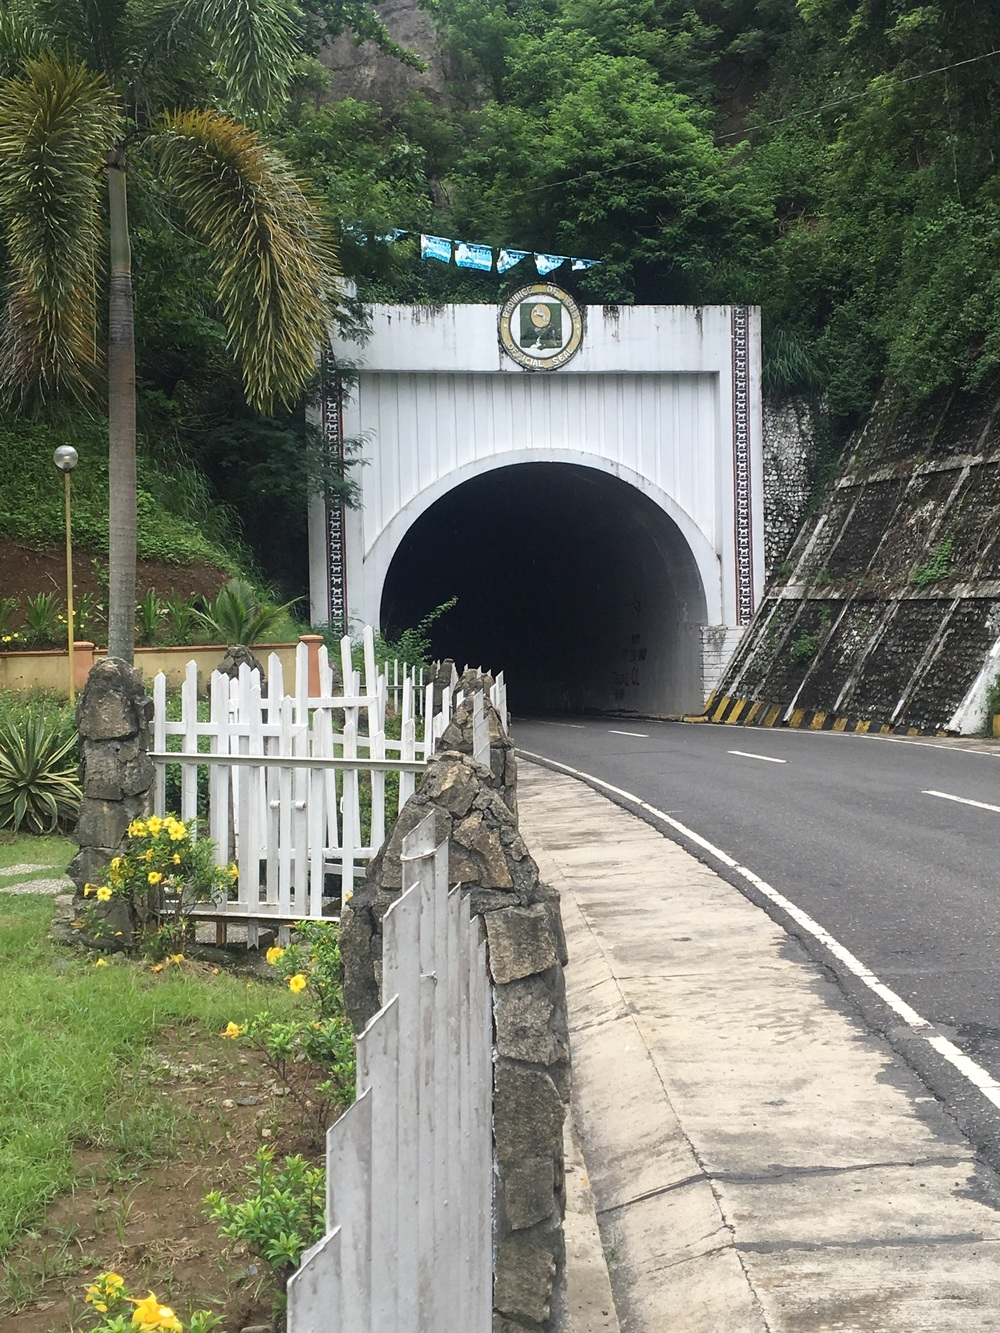 The tunnel leading into Abra